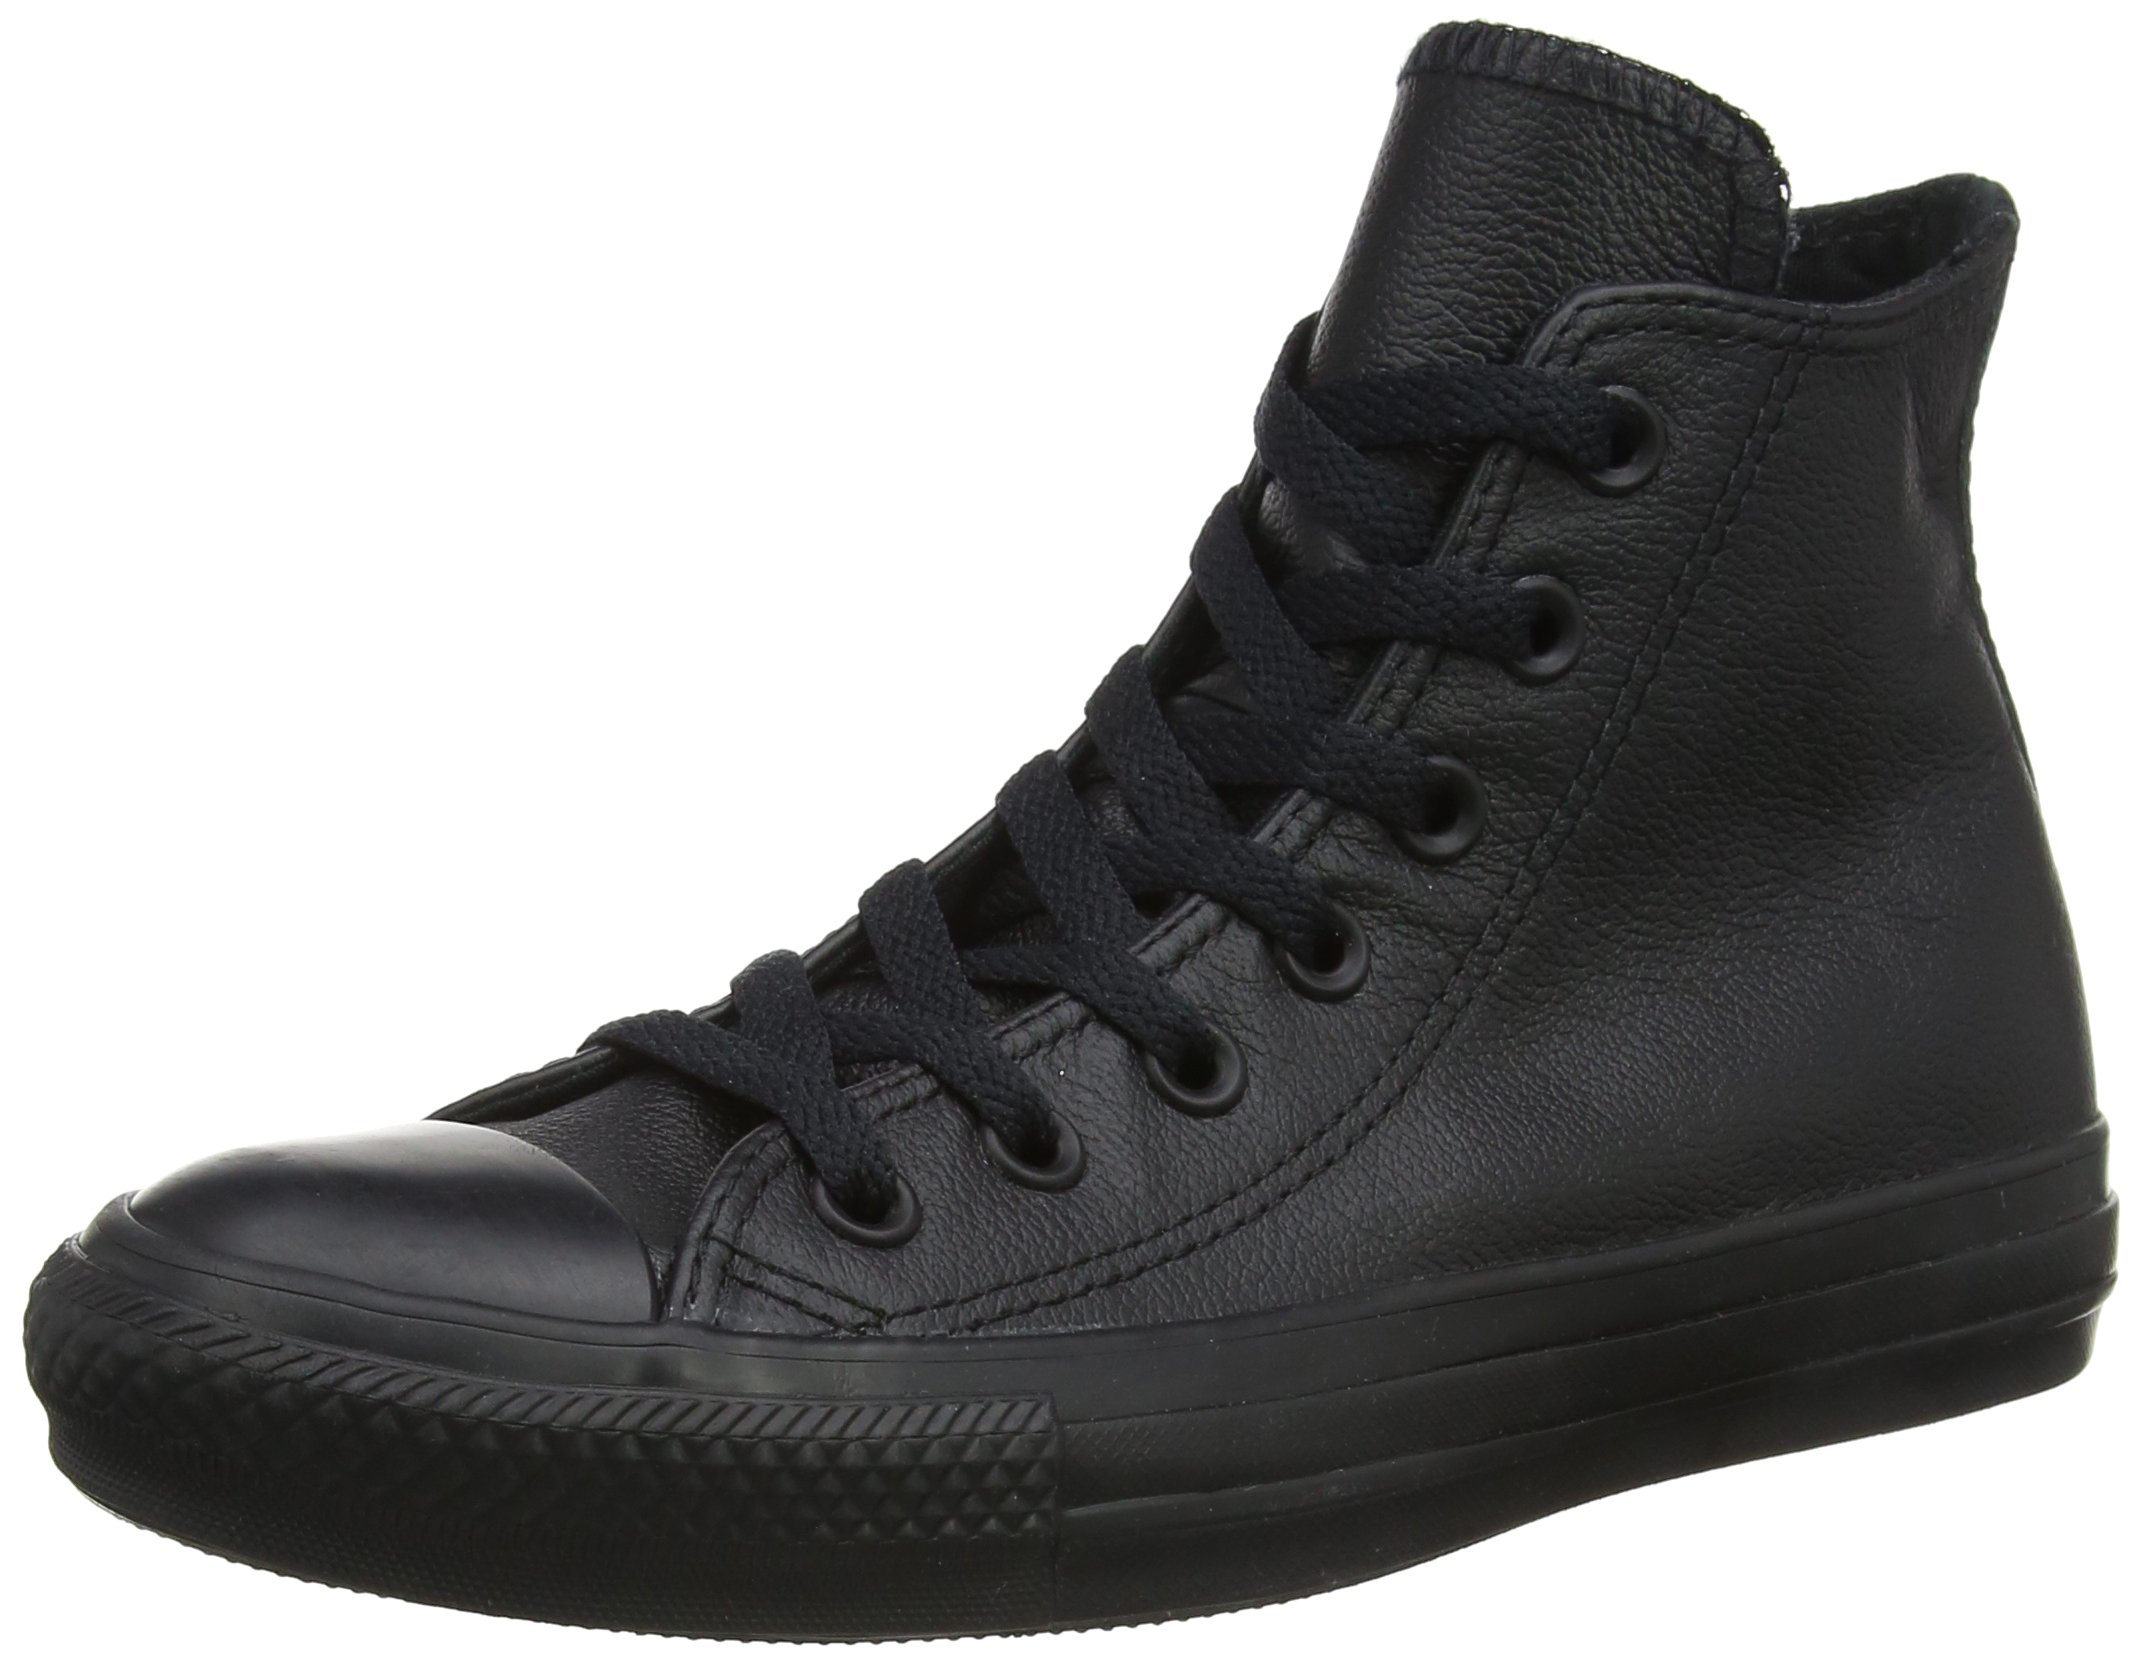 Converse Hi Top Leather Black Mono 8.5 by Converse